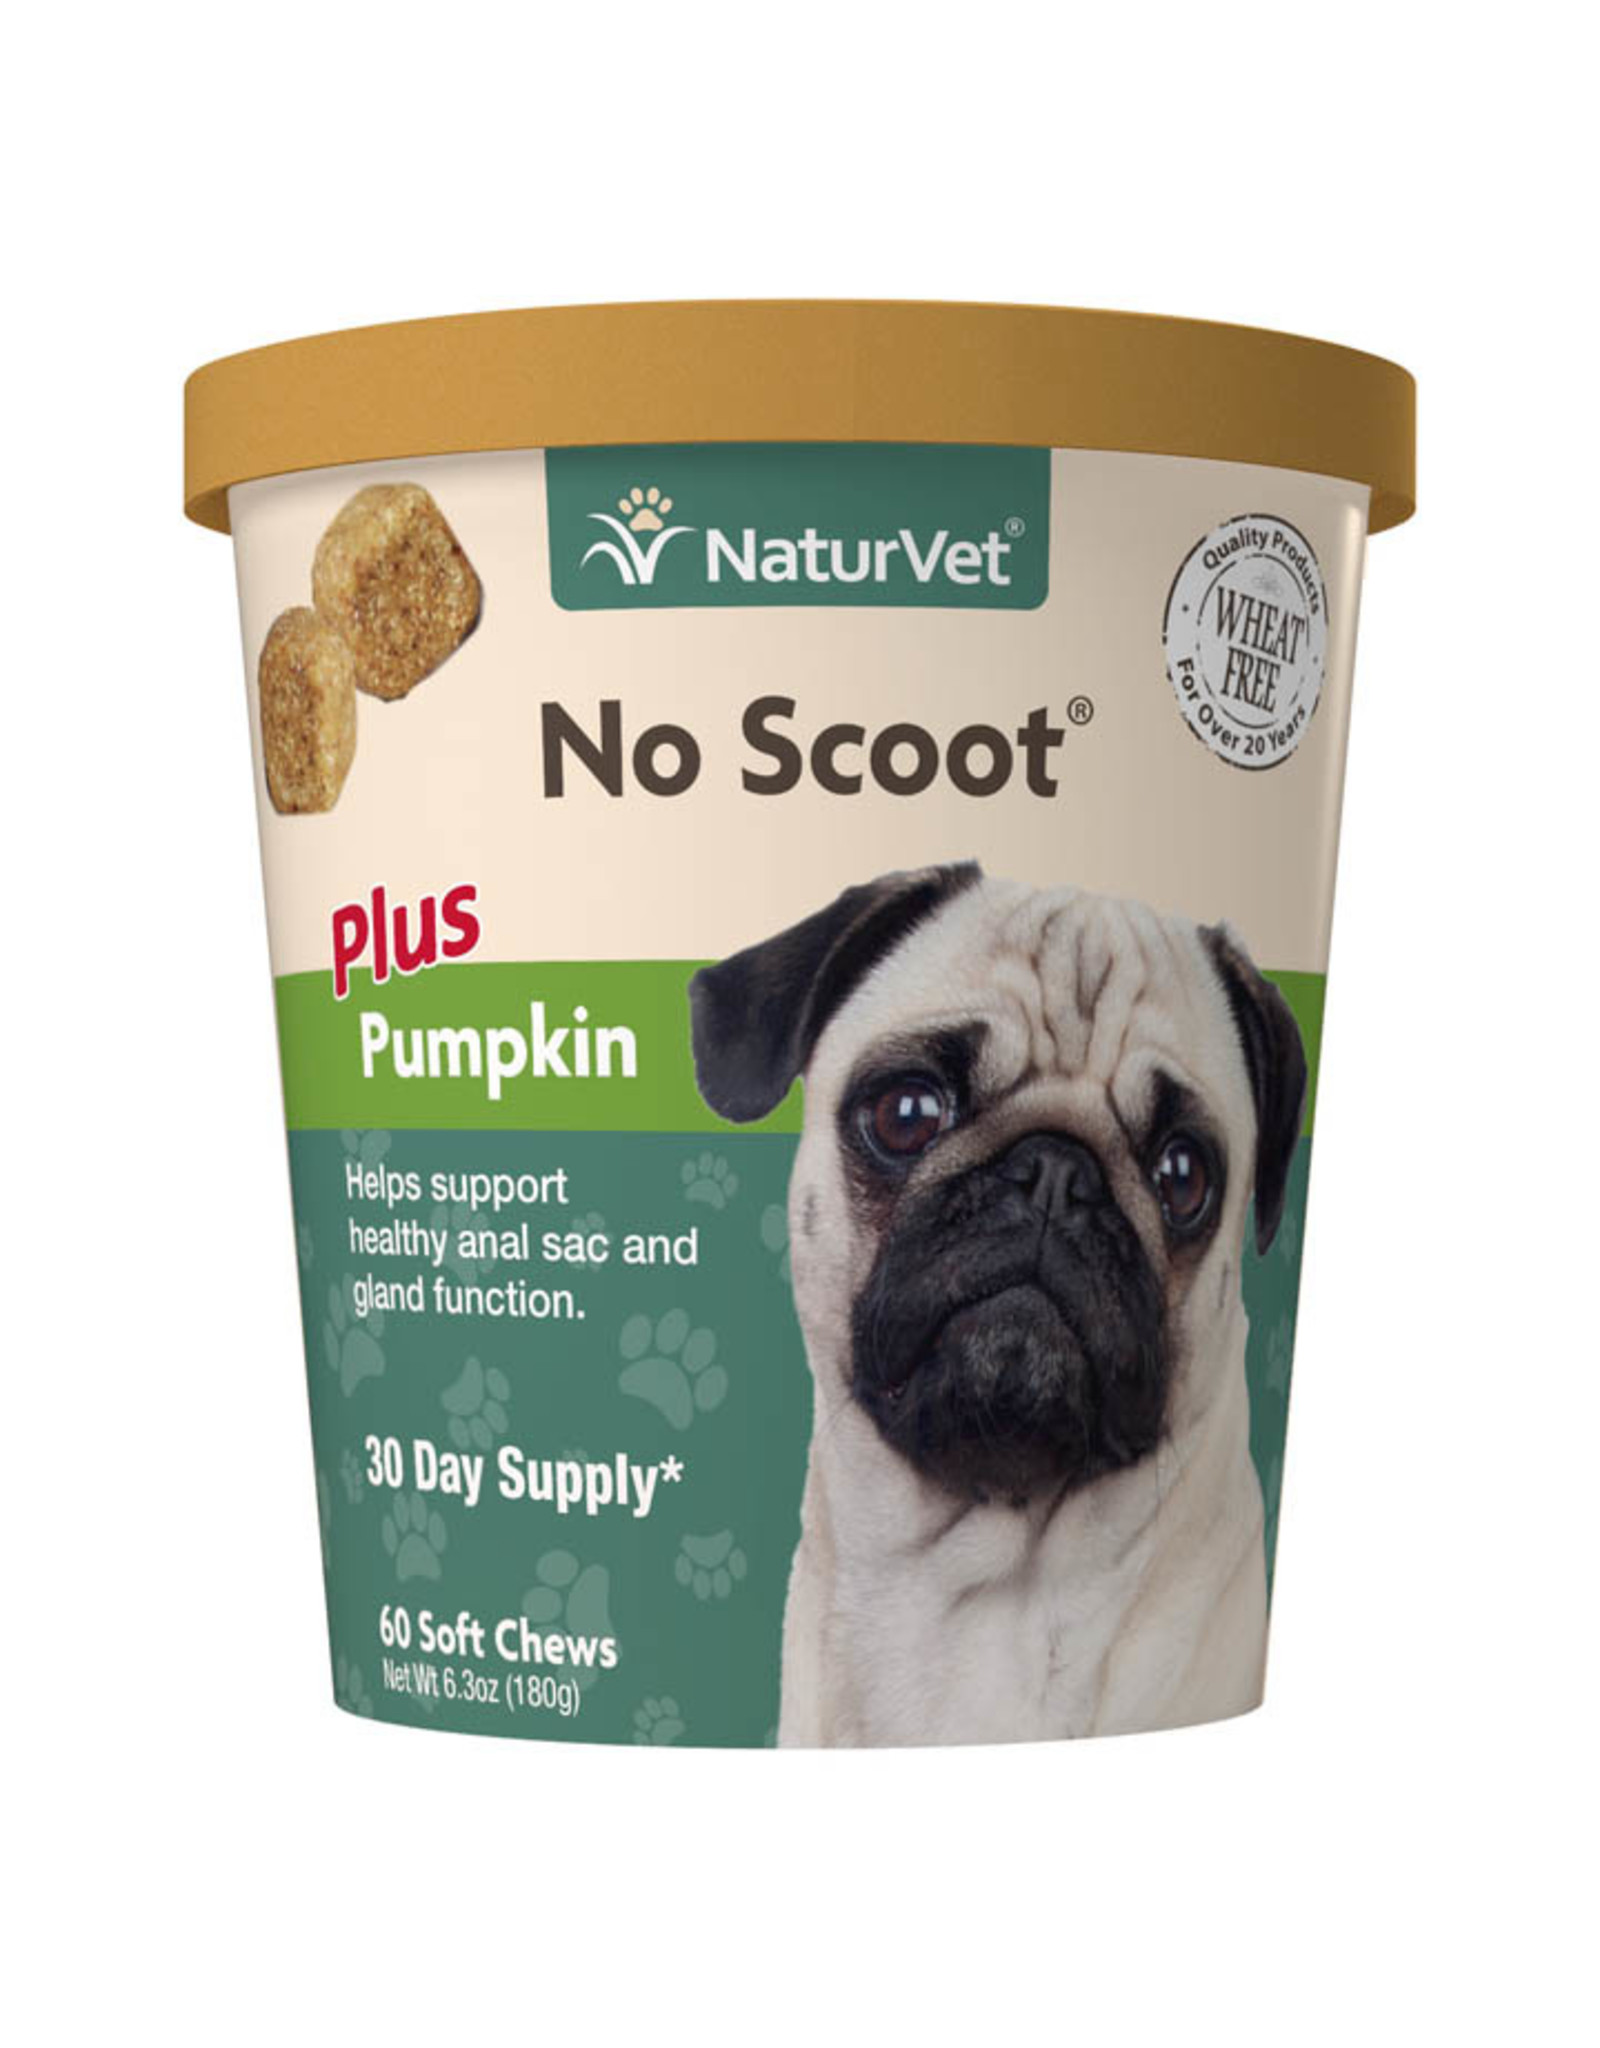 naturVet NaturVet No Scoot plus Pumpkin Chew - 60ct, 120ct